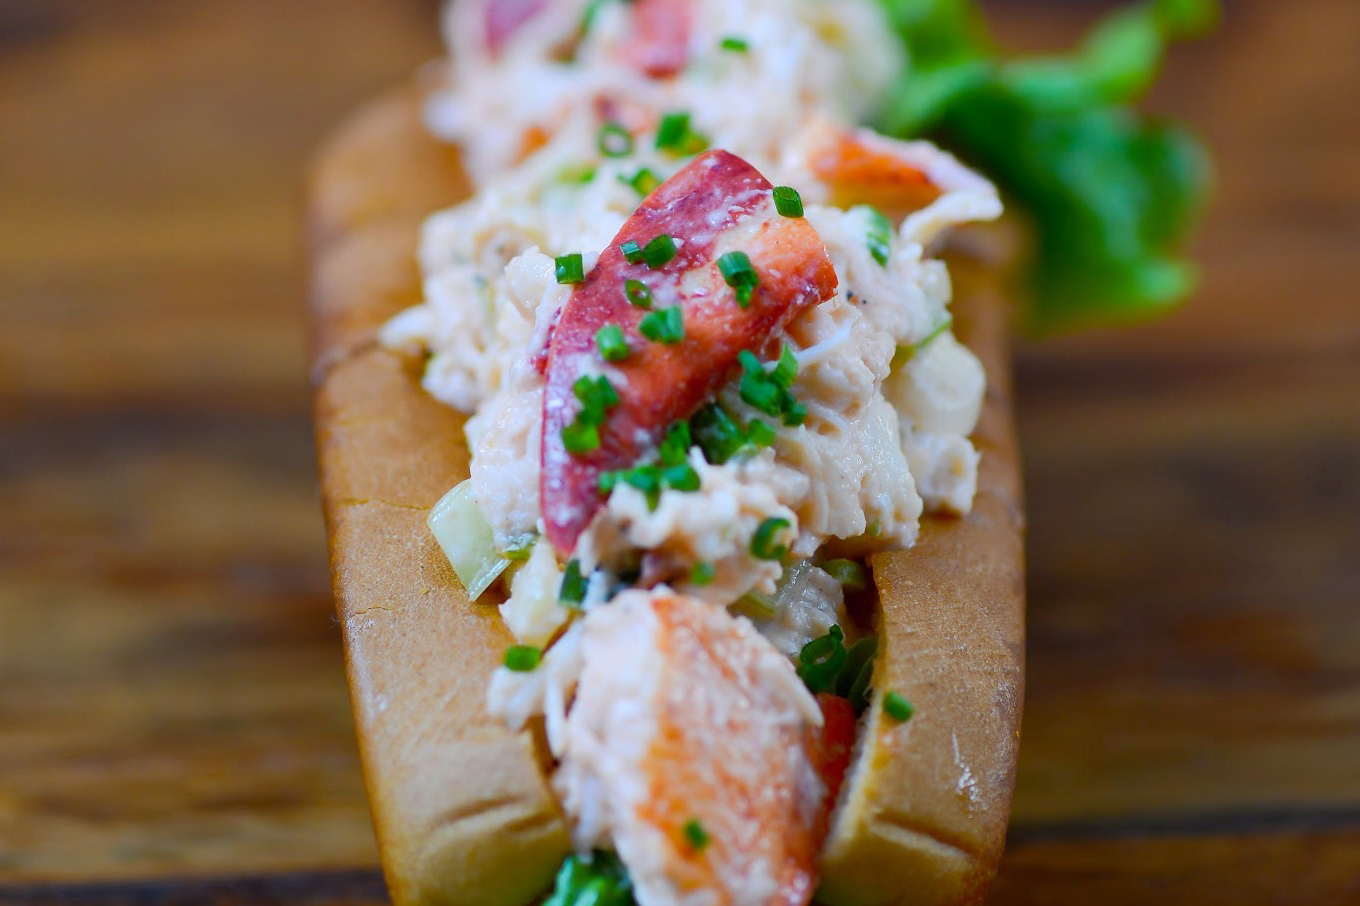 Lobster roll at Cull & Pistol